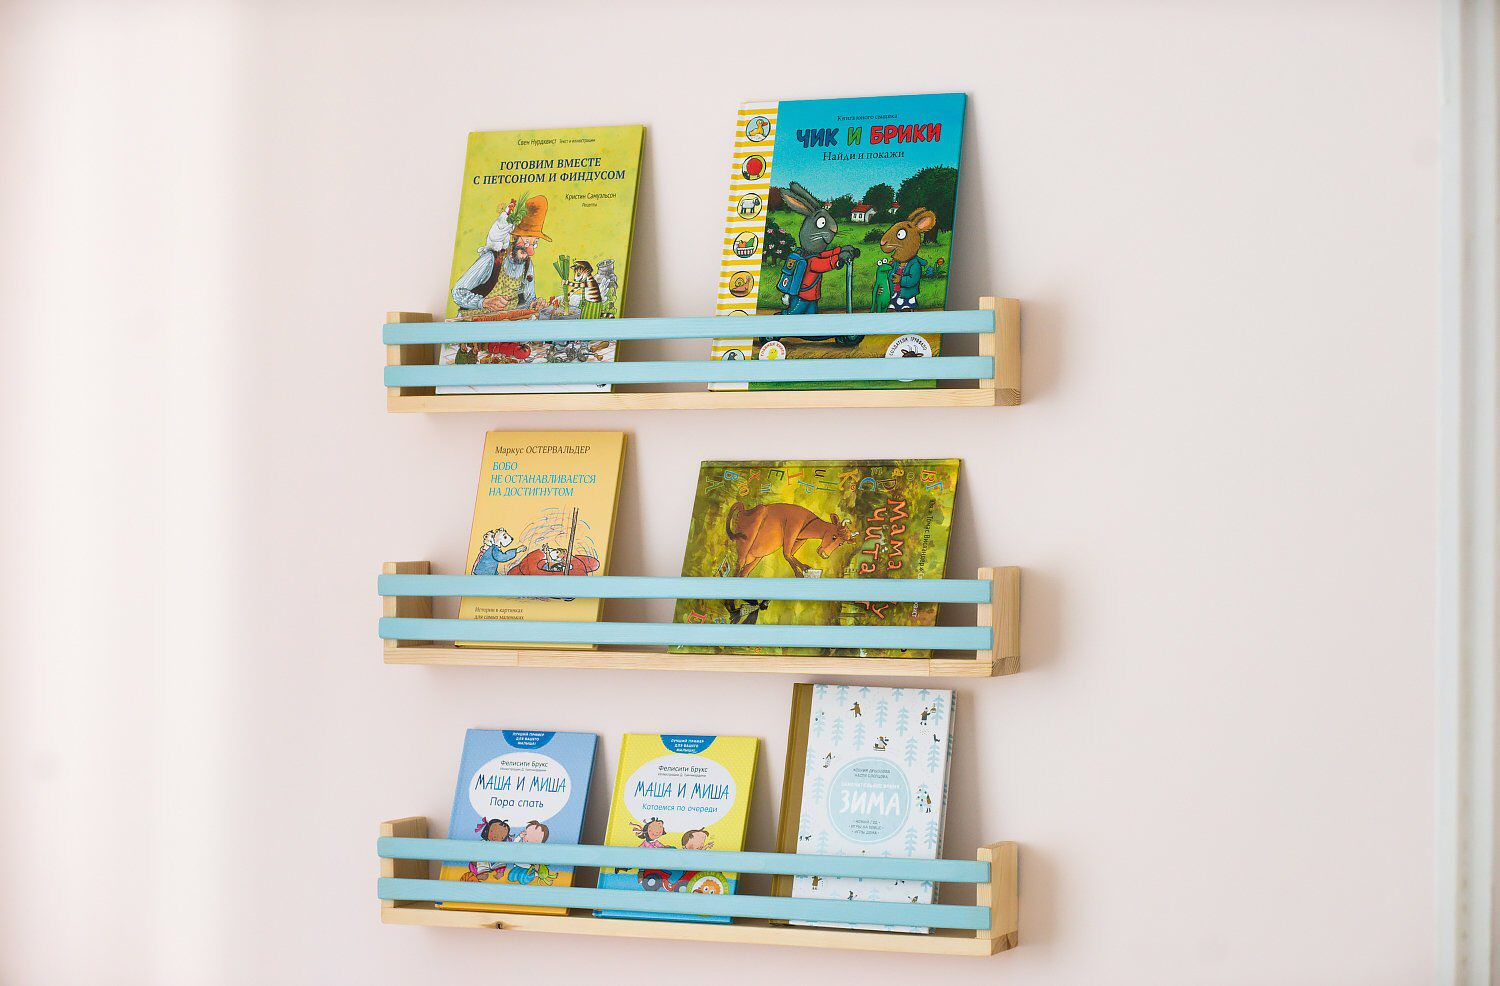 One Children S Book Wall Shelf Wall Shelf Floating Shelf Kids Book Rack Nursery Bookshelf Book Organizer Wall Bookshelves Nursery Bookshelf Floating Shelves